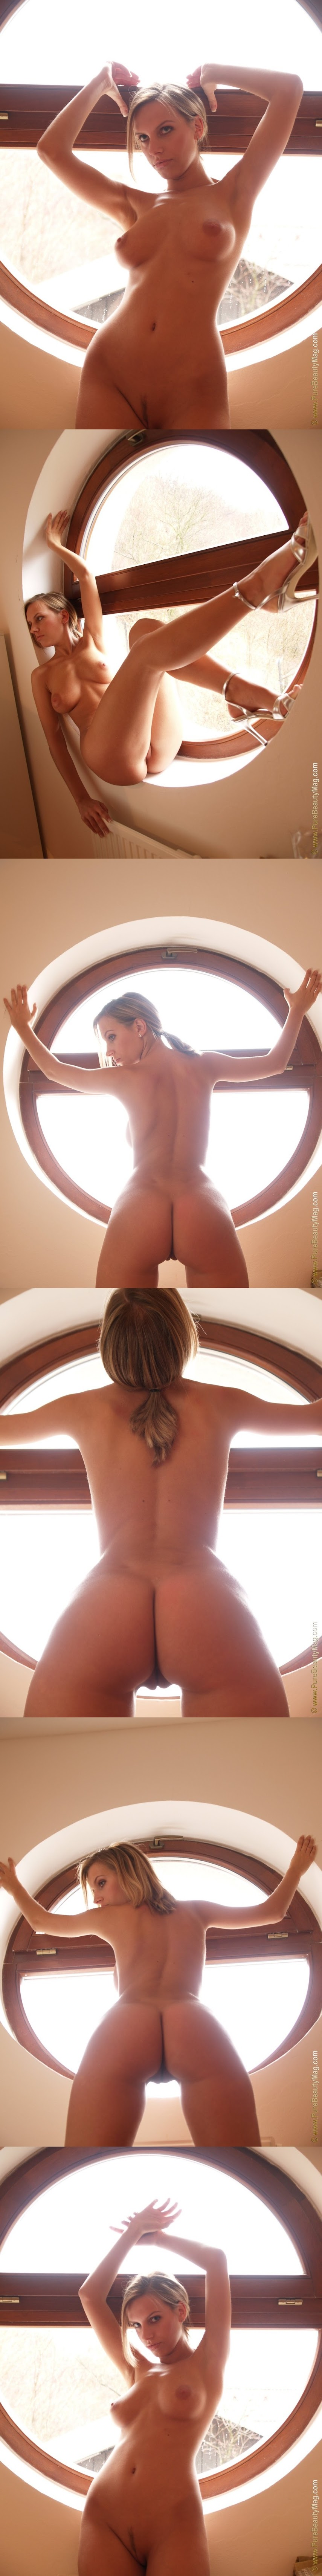 PureBeautyMag_PBM__-_2004-09-10_-_#s10233_-_Lenka_-_Unclothed_Obscure_-_2560px.zip-jk- PureBeautyMag PBM  - 2004-09-18 - #s29138 - Deny - Sunbathe - 3264px